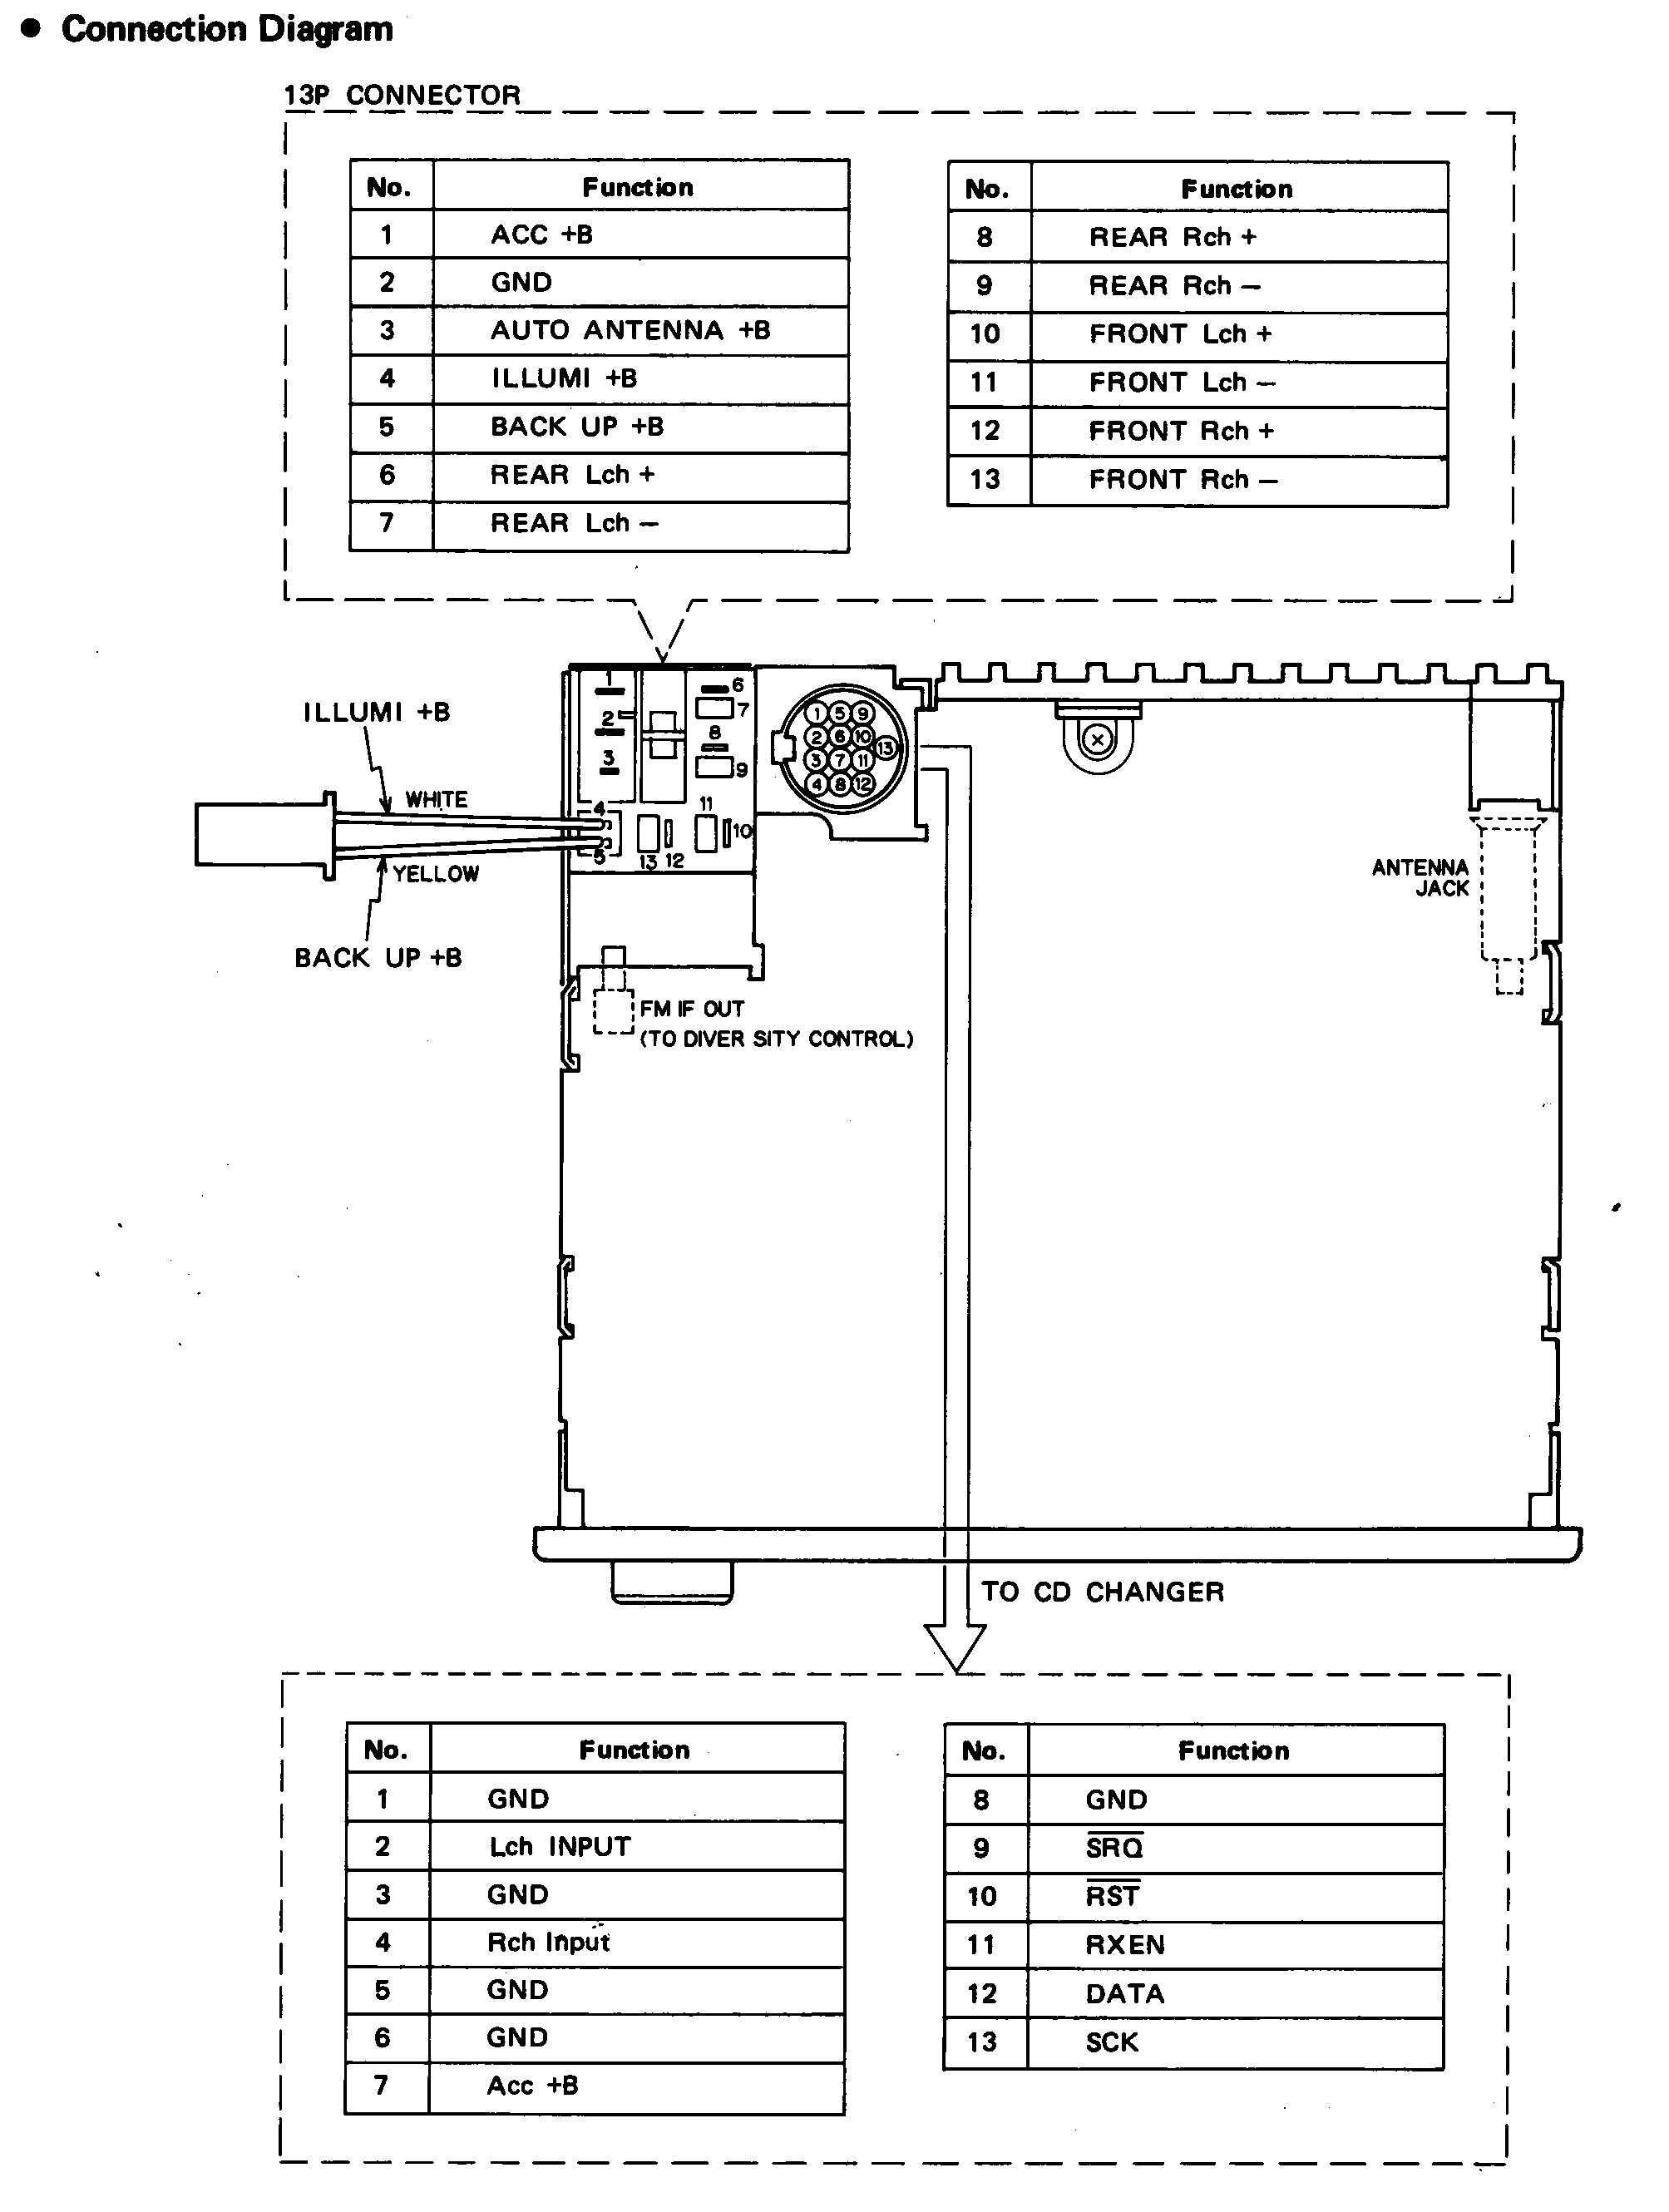 Wiring Diagram for Car Audio System Car Stereo Wiring Diagram Bmw Car Radio Stereo Audio Wiring Diagram Of Wiring Diagram for Car Audio System